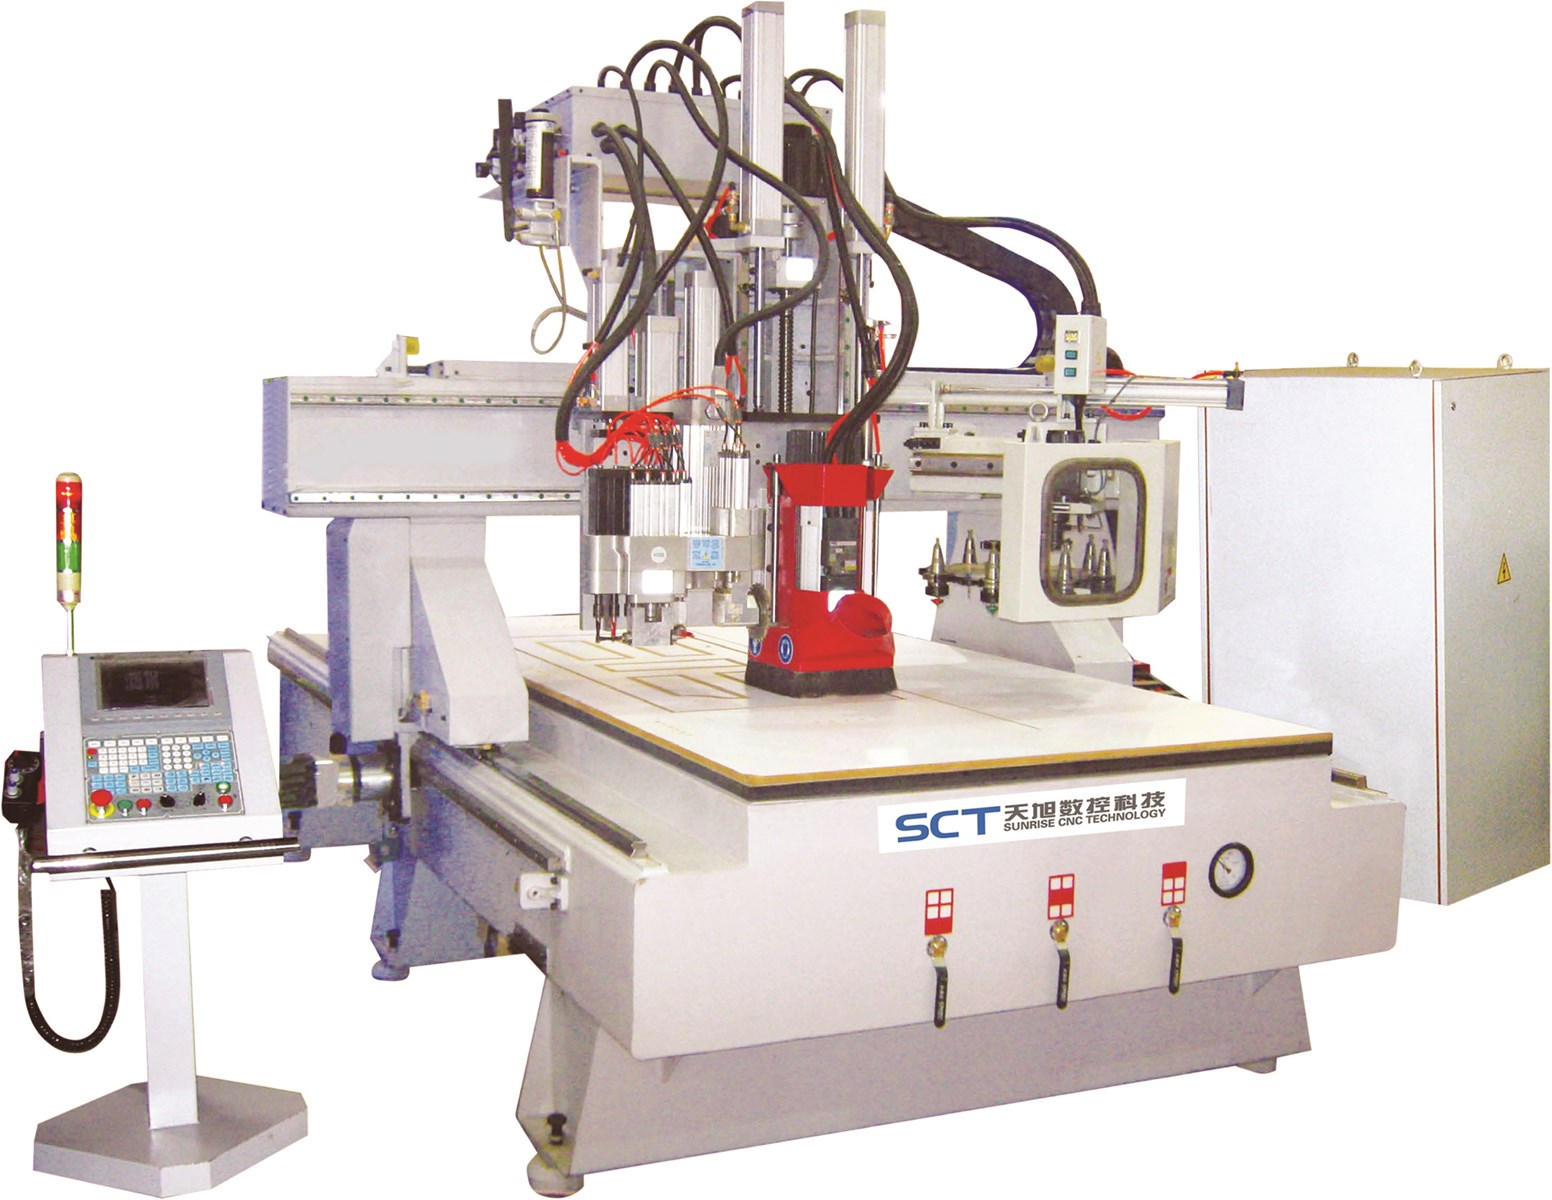 SCT-S1325C Automatic Machine 1500*3000mm China Equipment ATC CNC ROUTER